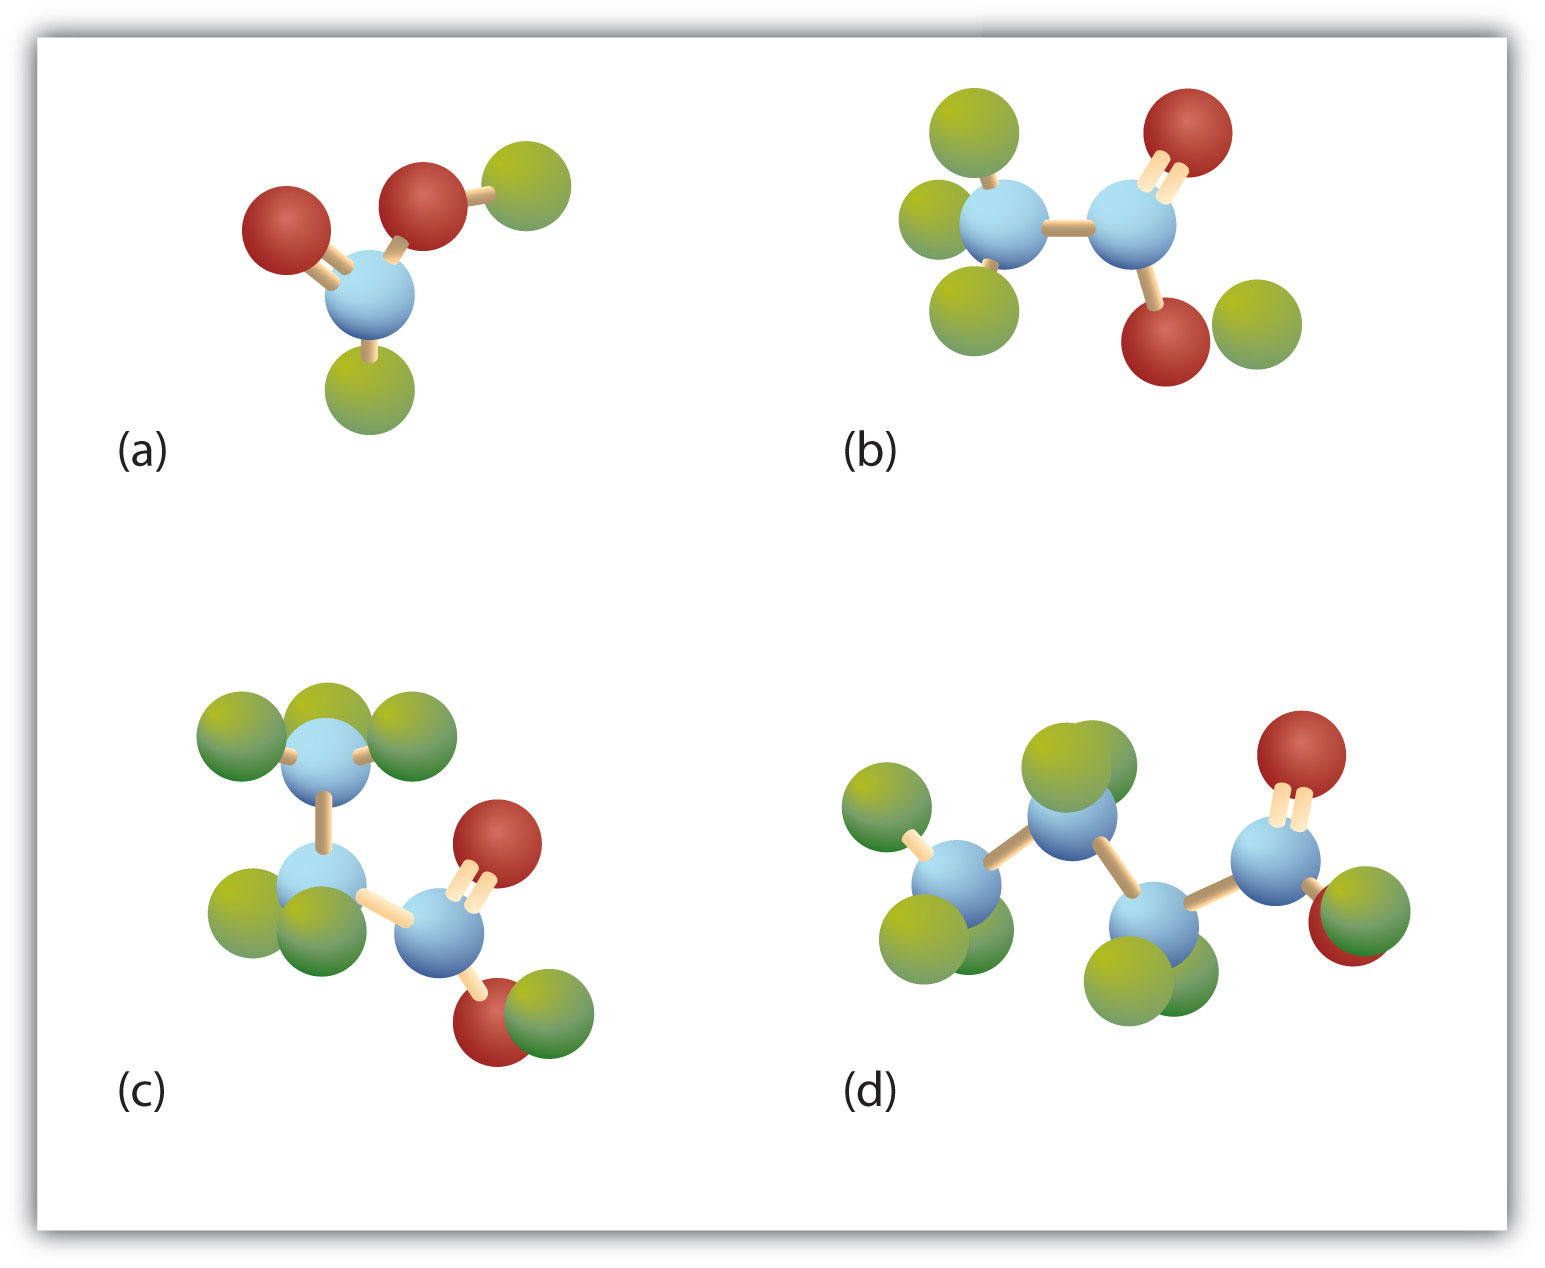 Carboxylic Acids Structures And Names Oxygen Atom Diagram Note